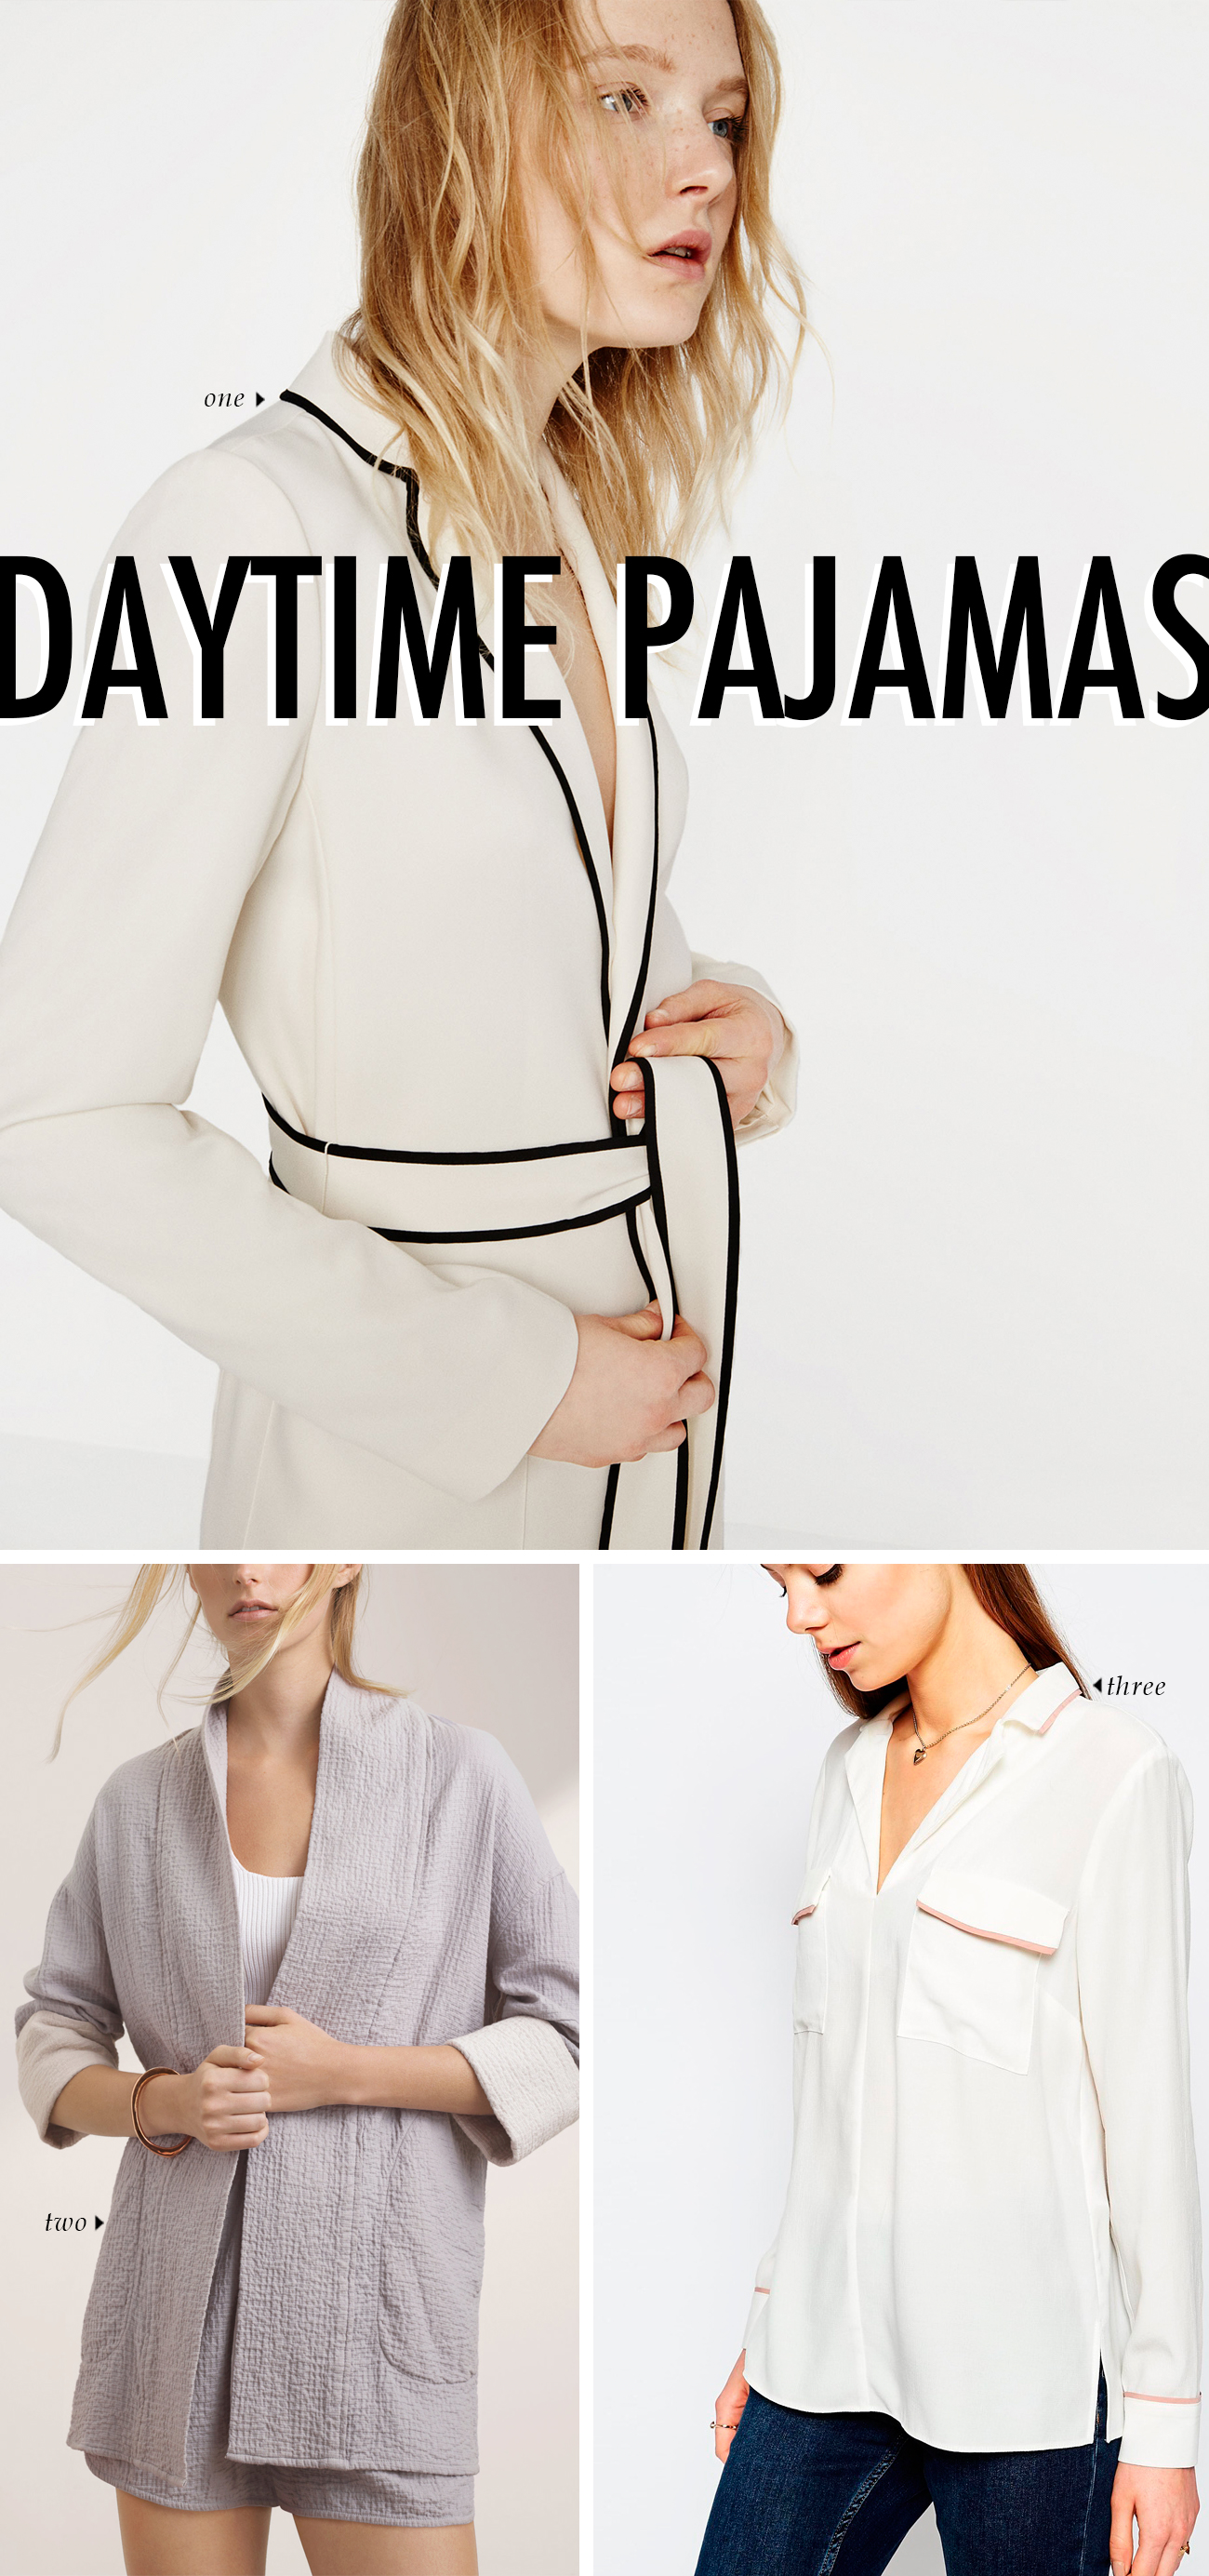 spring summer 2016 clothing trends - DAYTIME PAJAMAS #trends